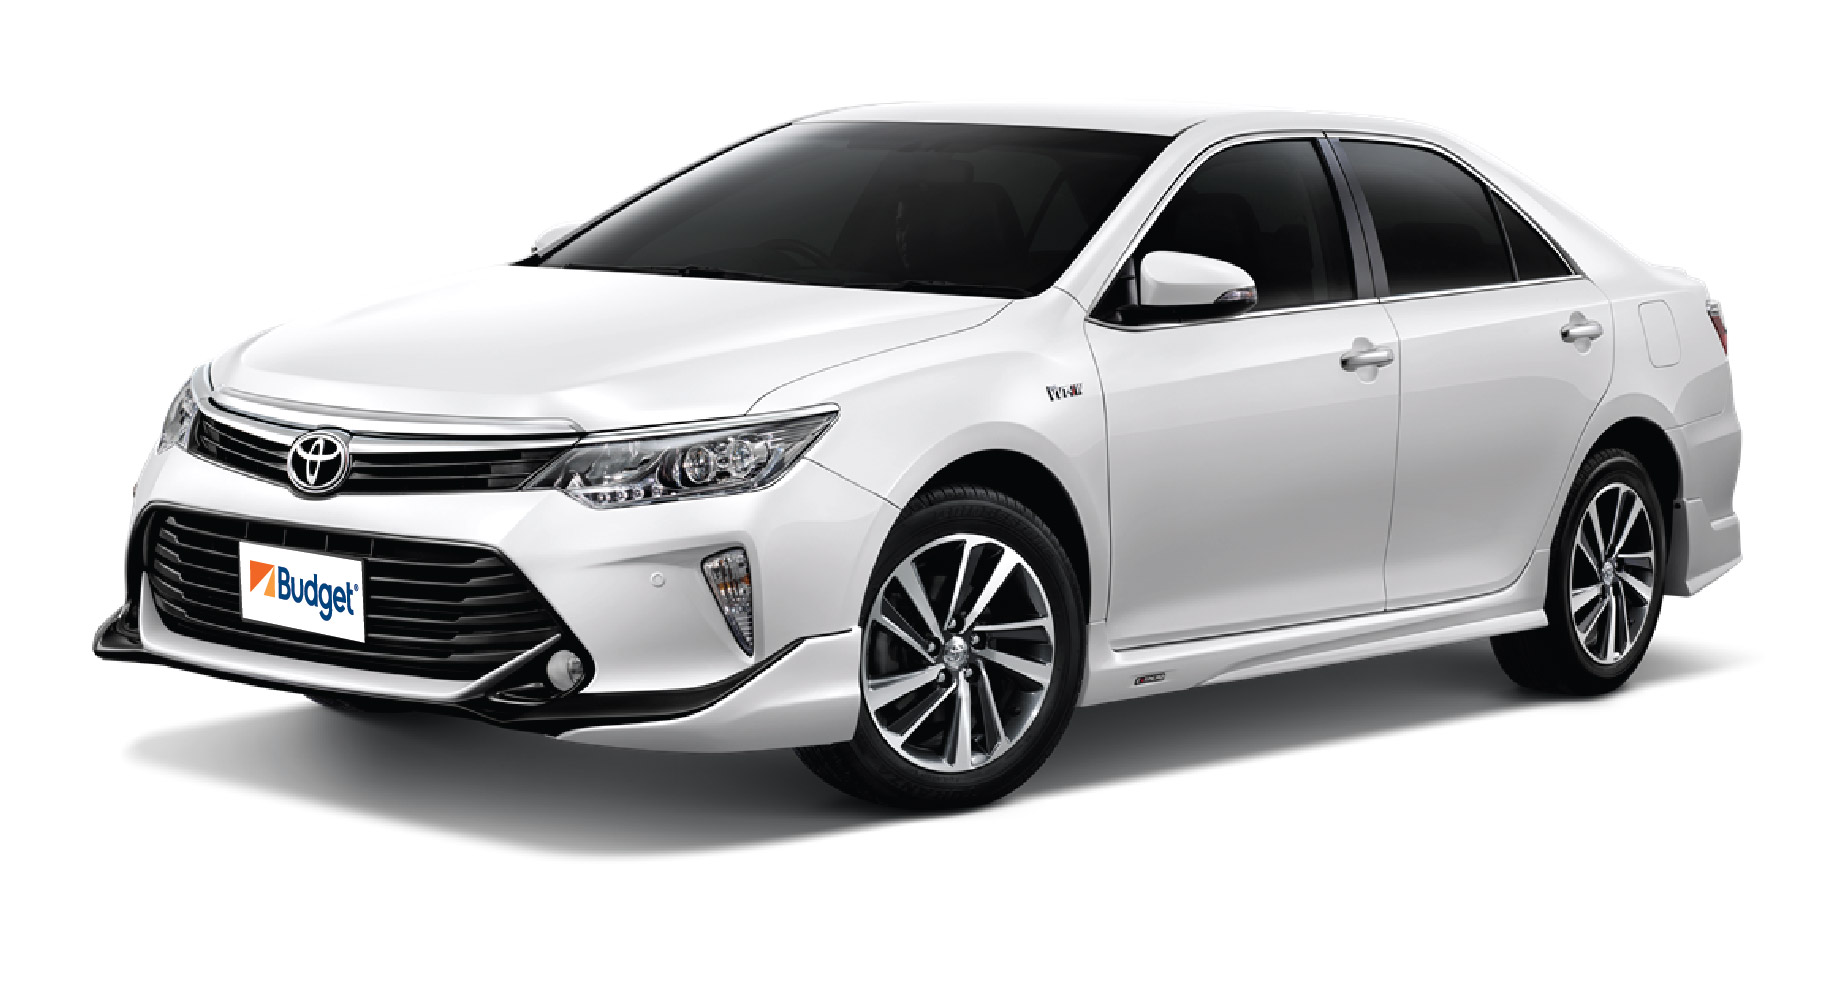 Toyota Camry or similar with driver